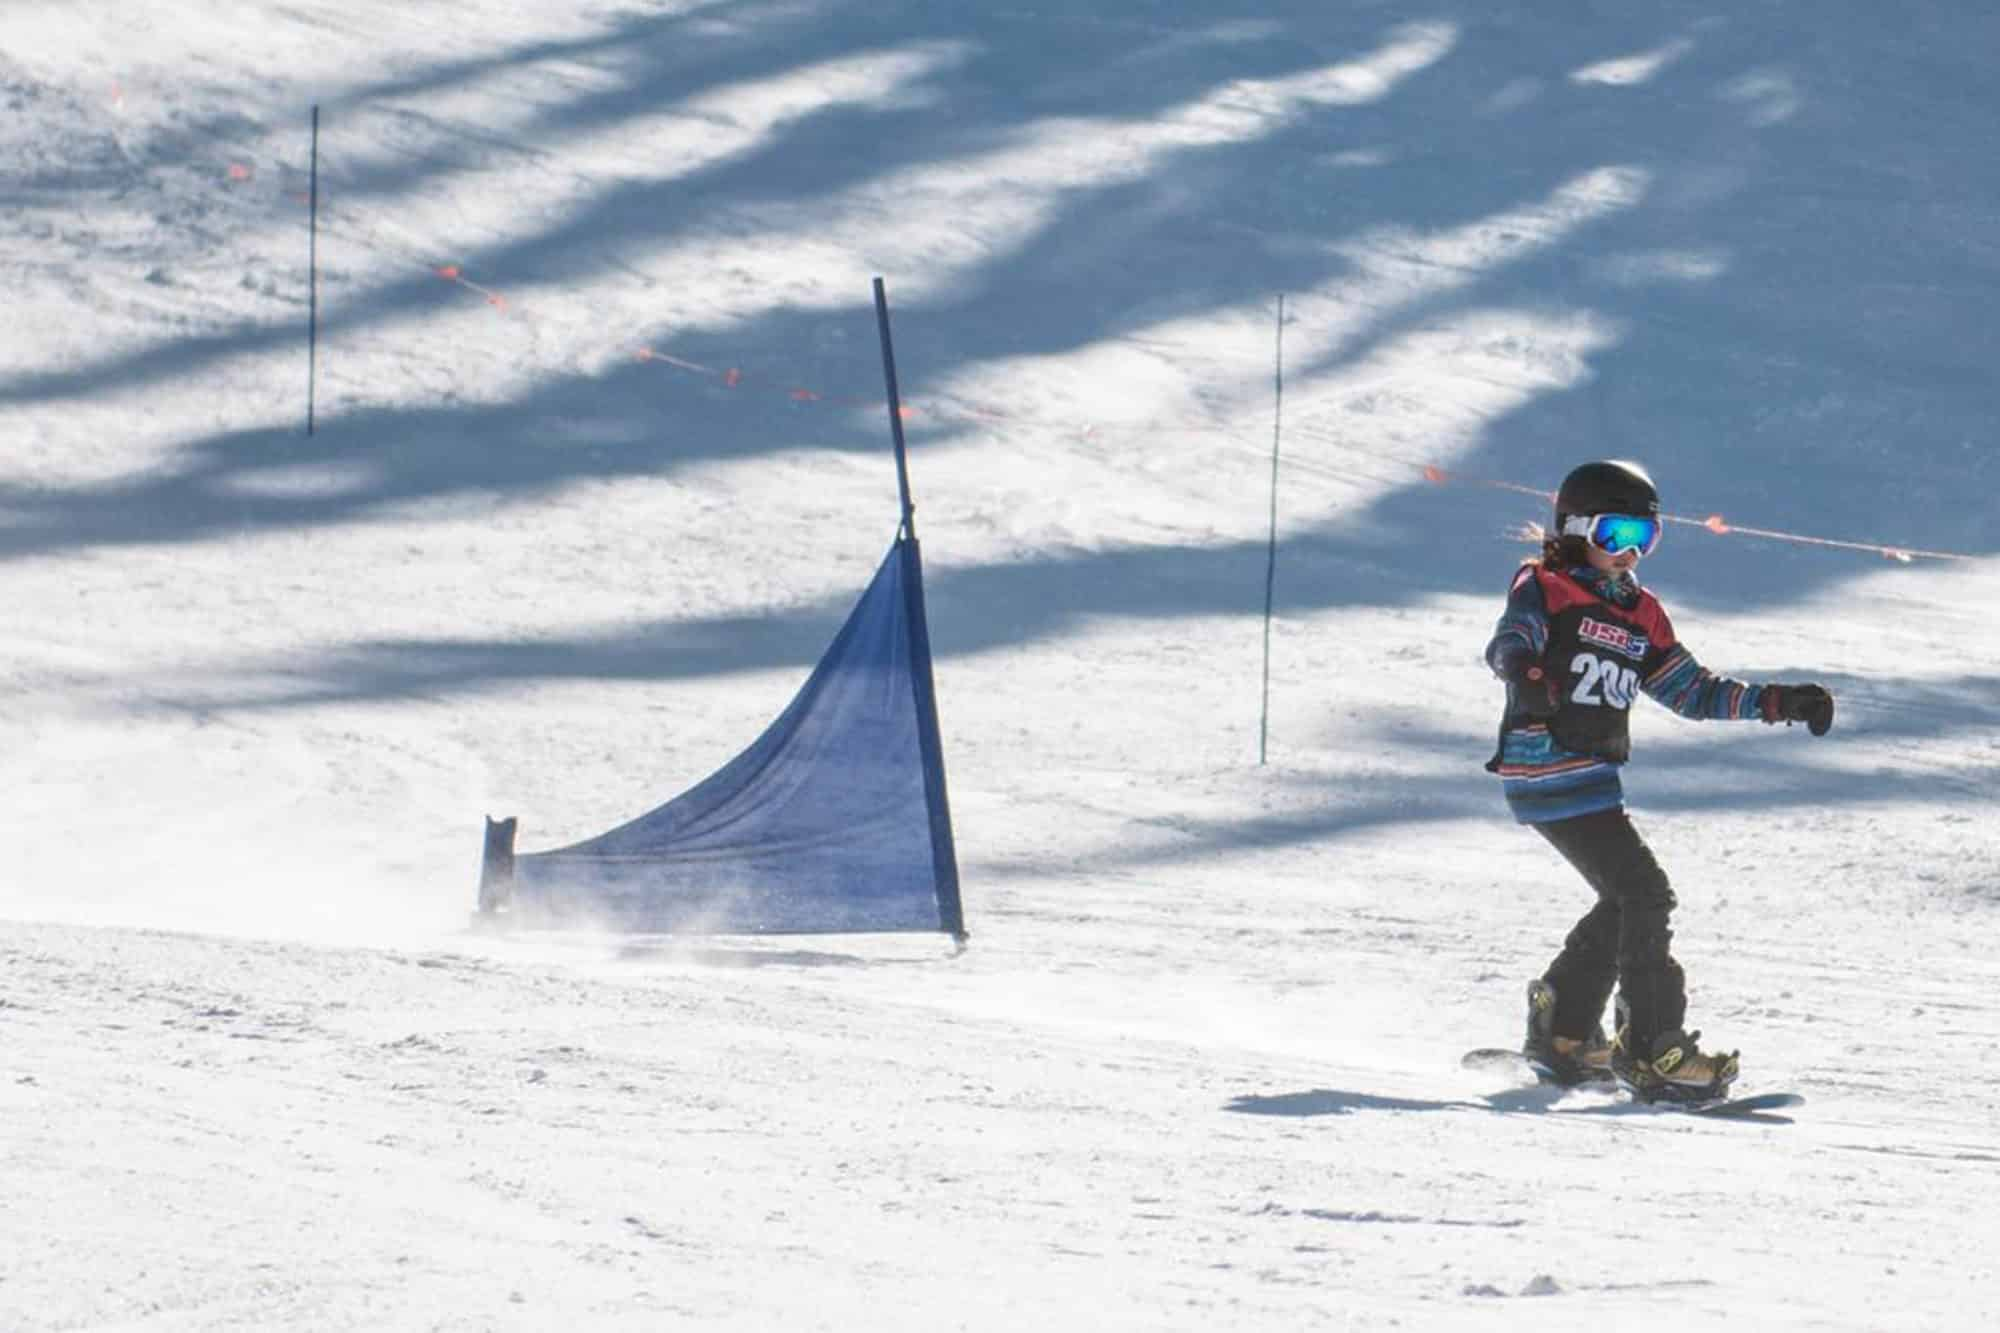 Snowboard racer turning around gates